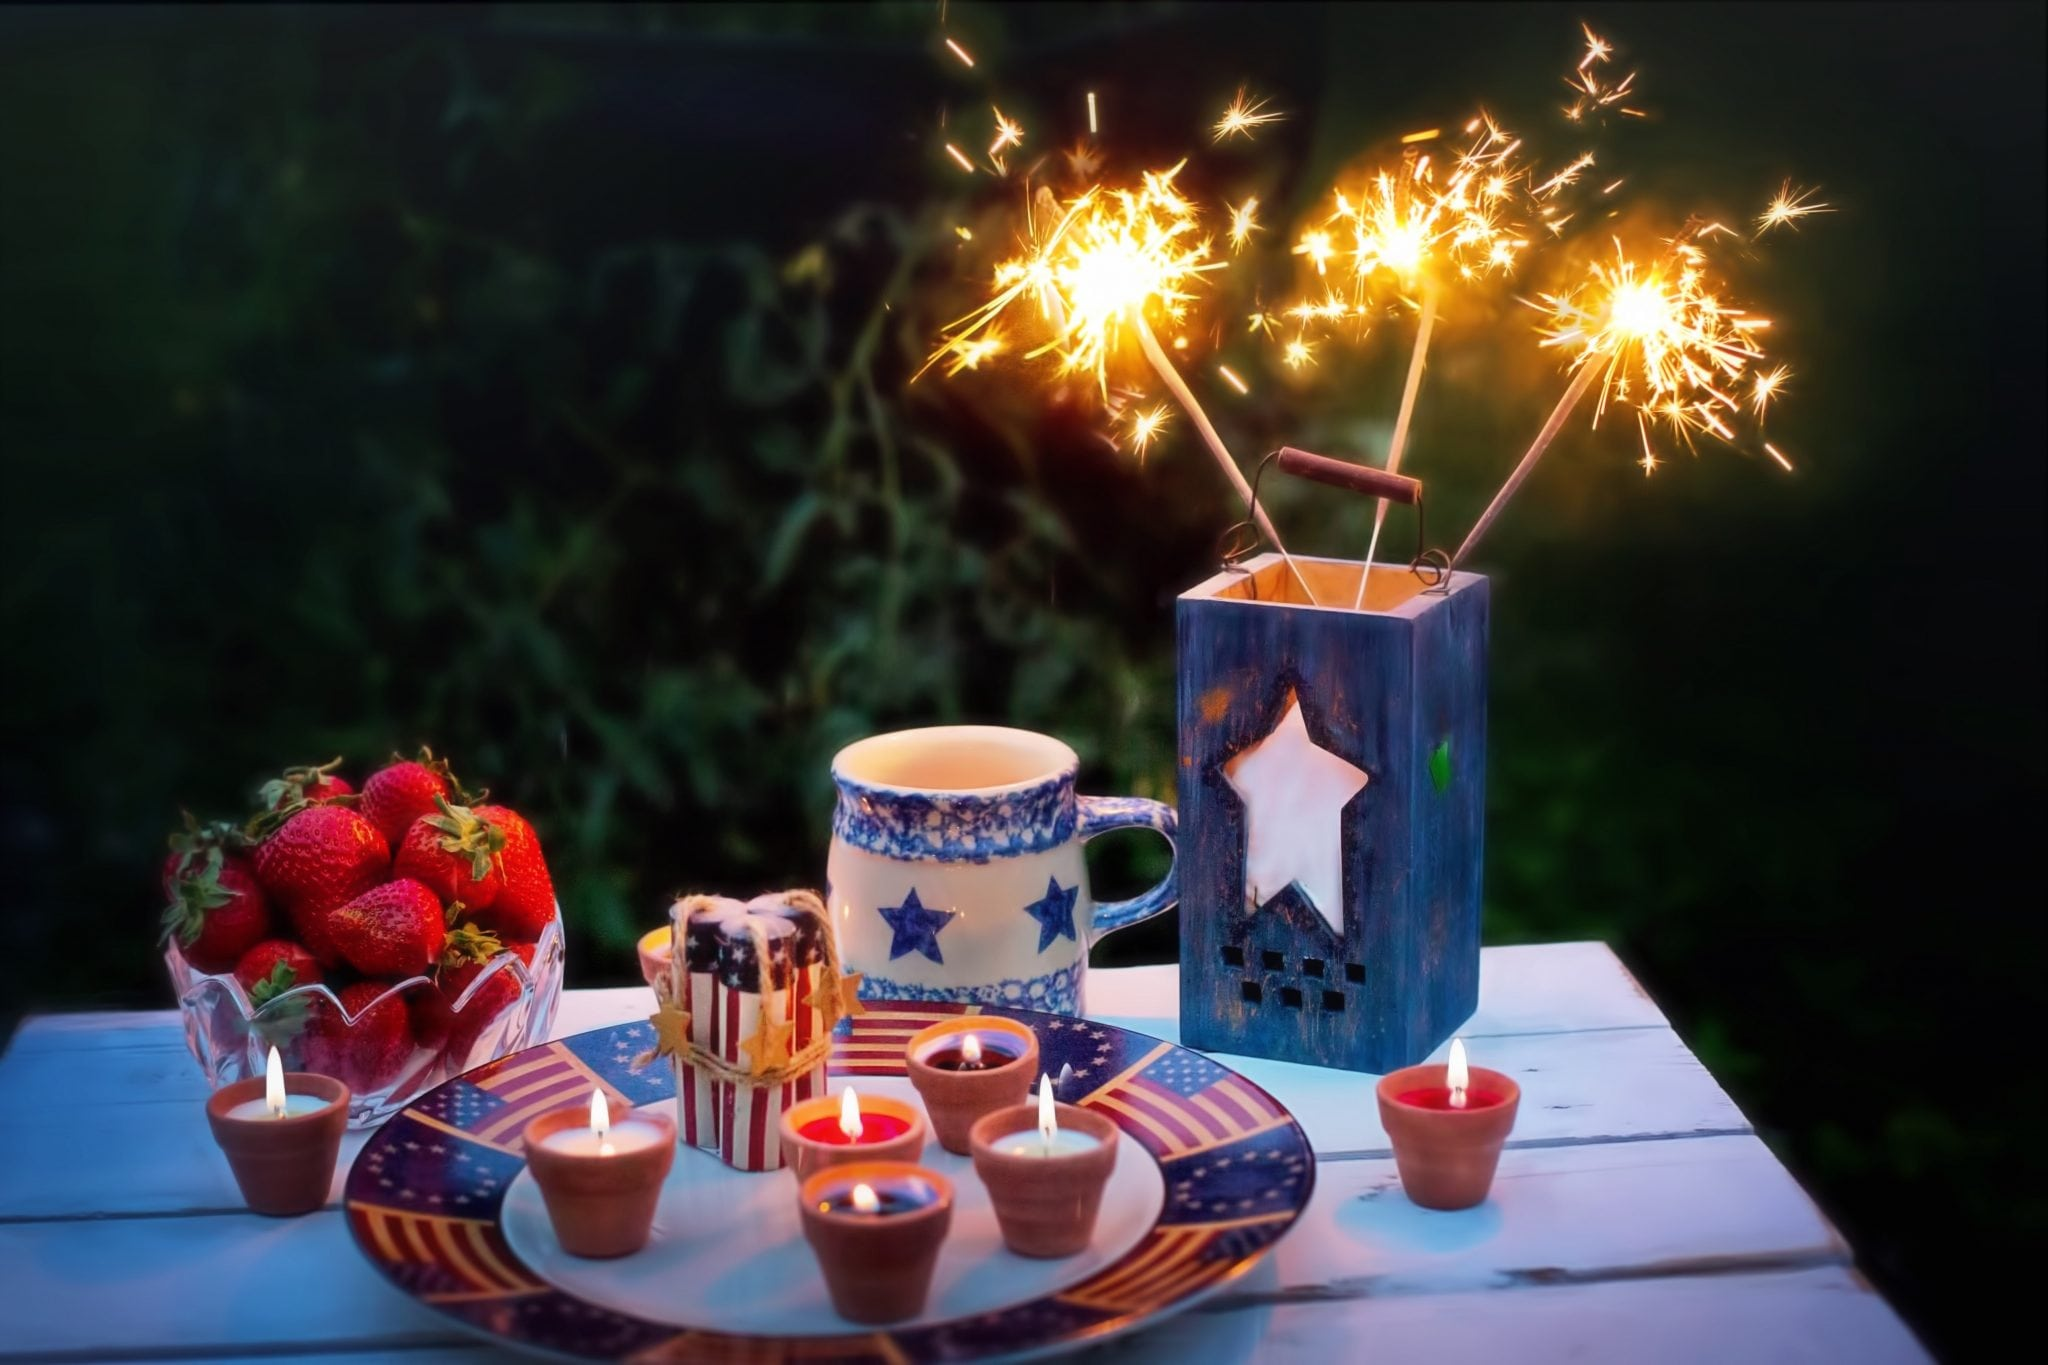 Our Restaurant Consultants on July 4th: Food & Beverage Family Memories